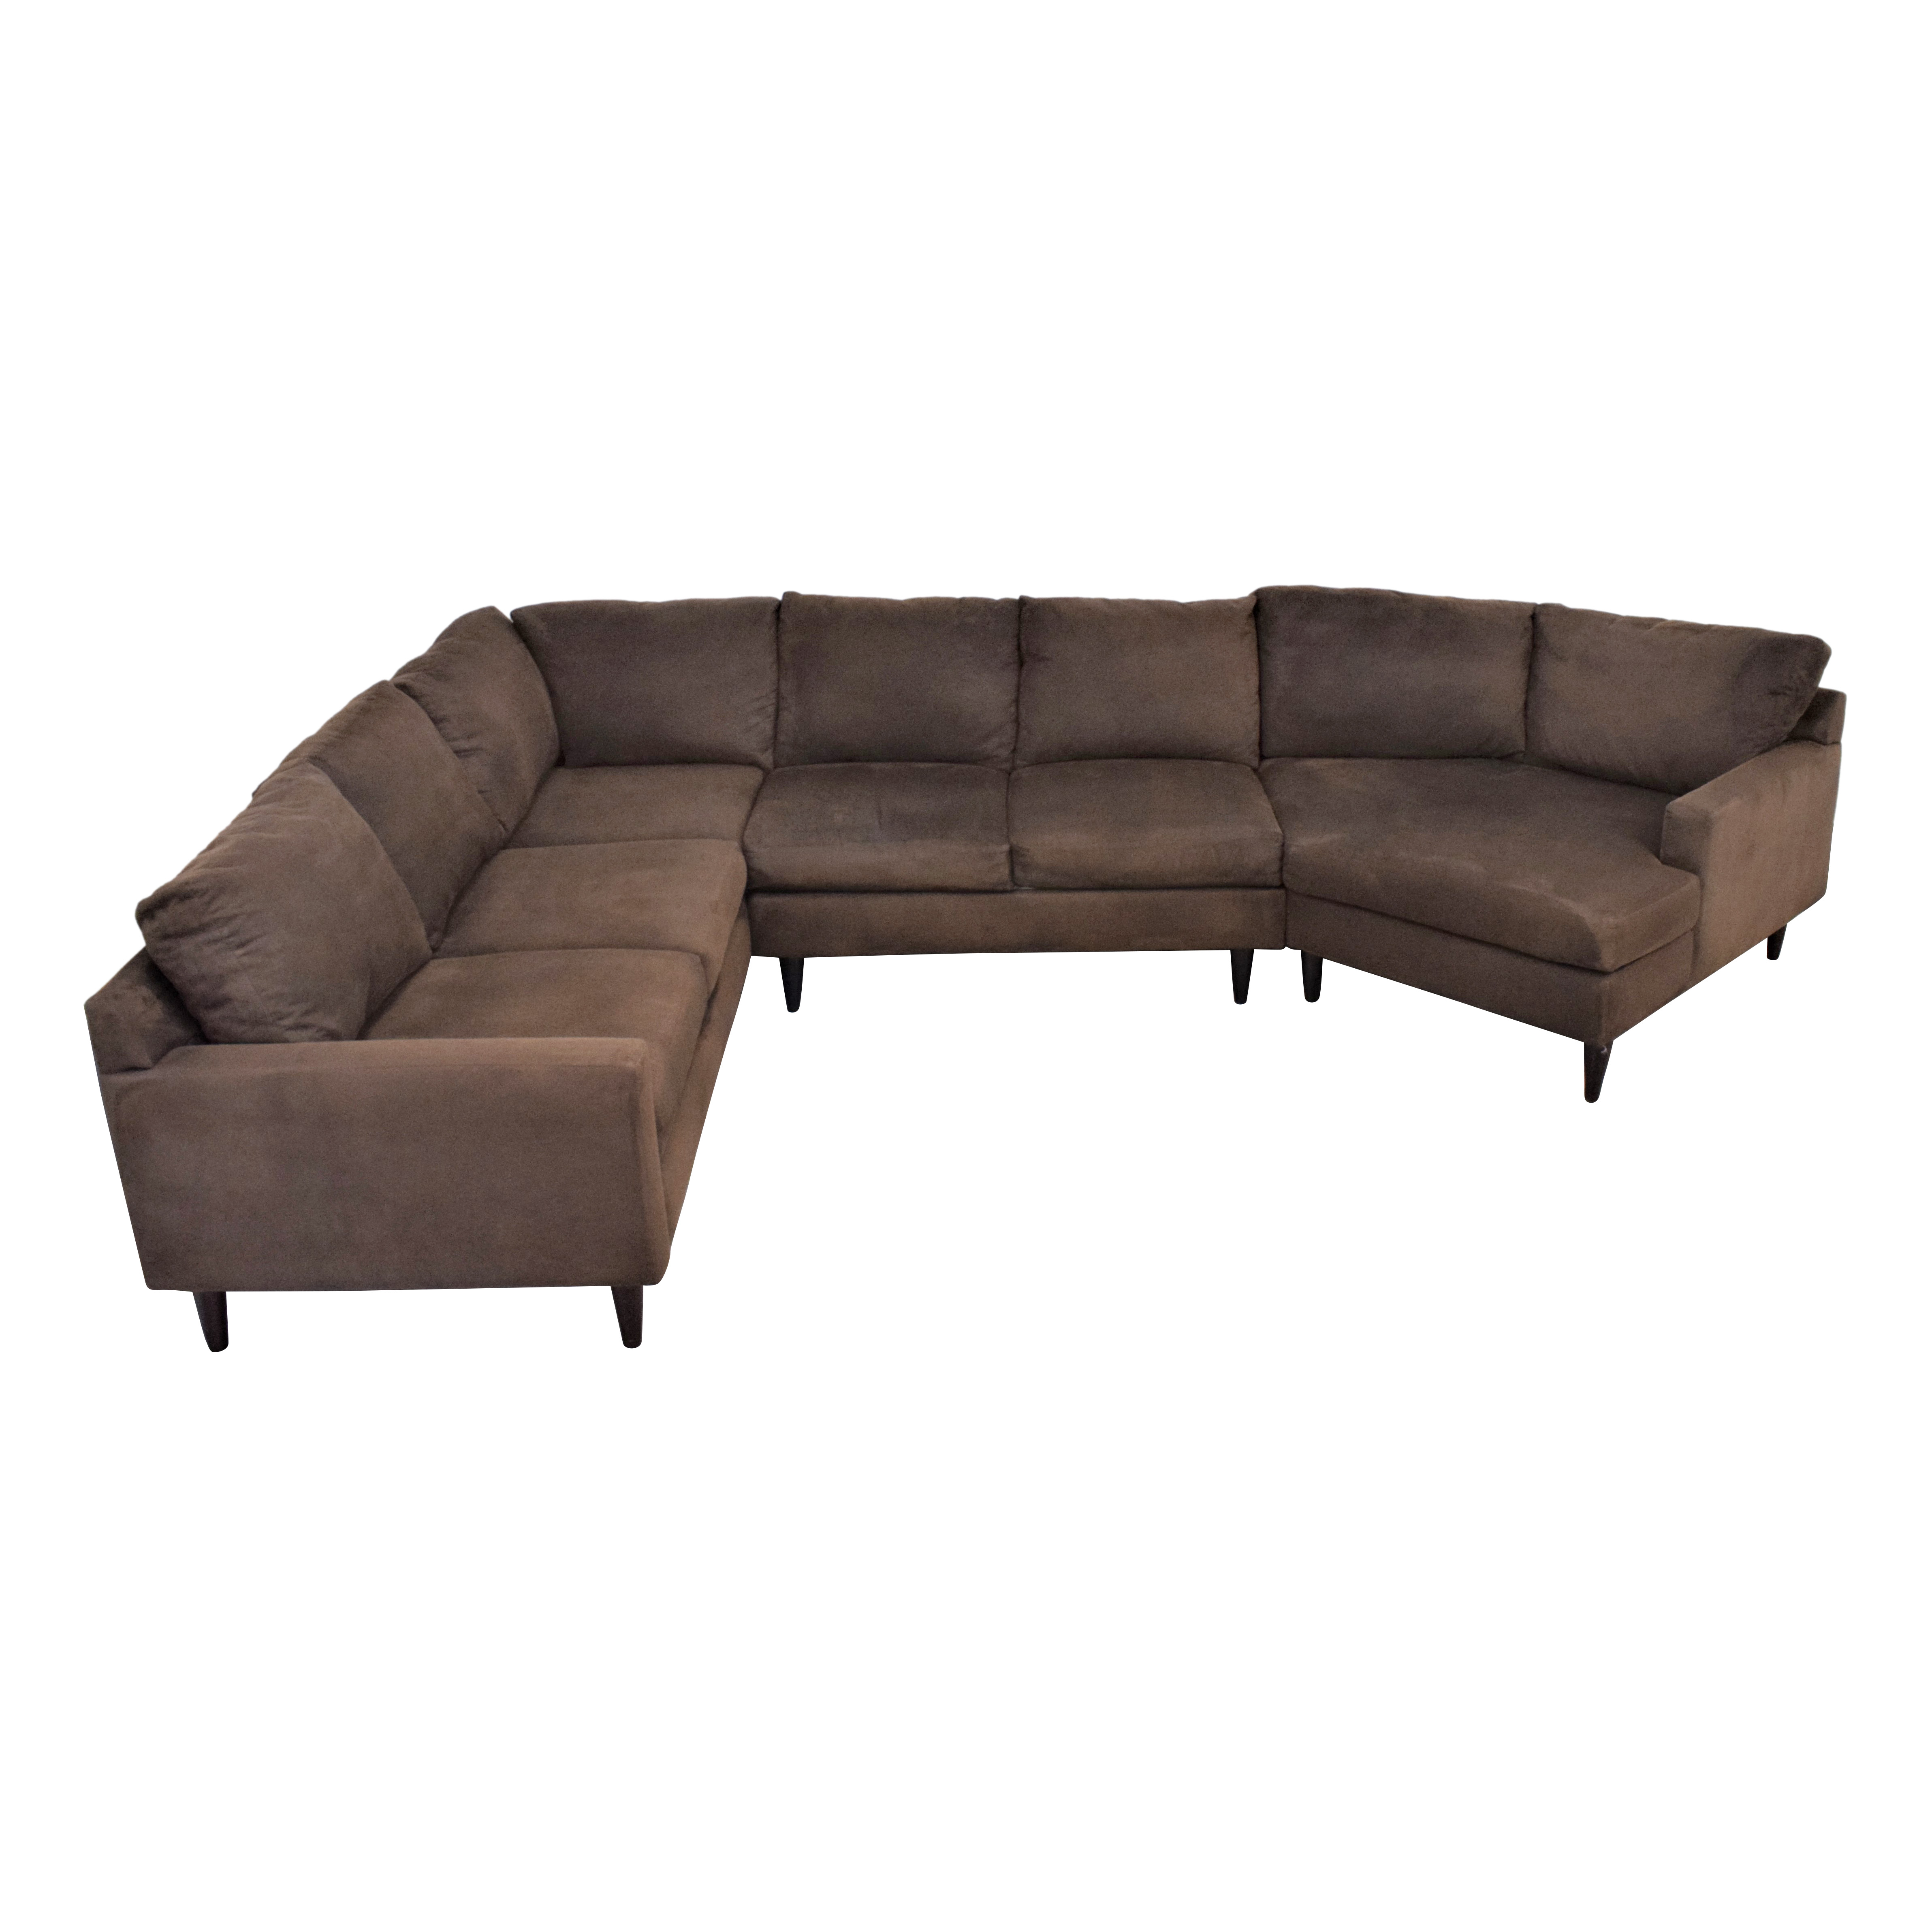 Max Home Max Home Cuddler Sectional Sofa used